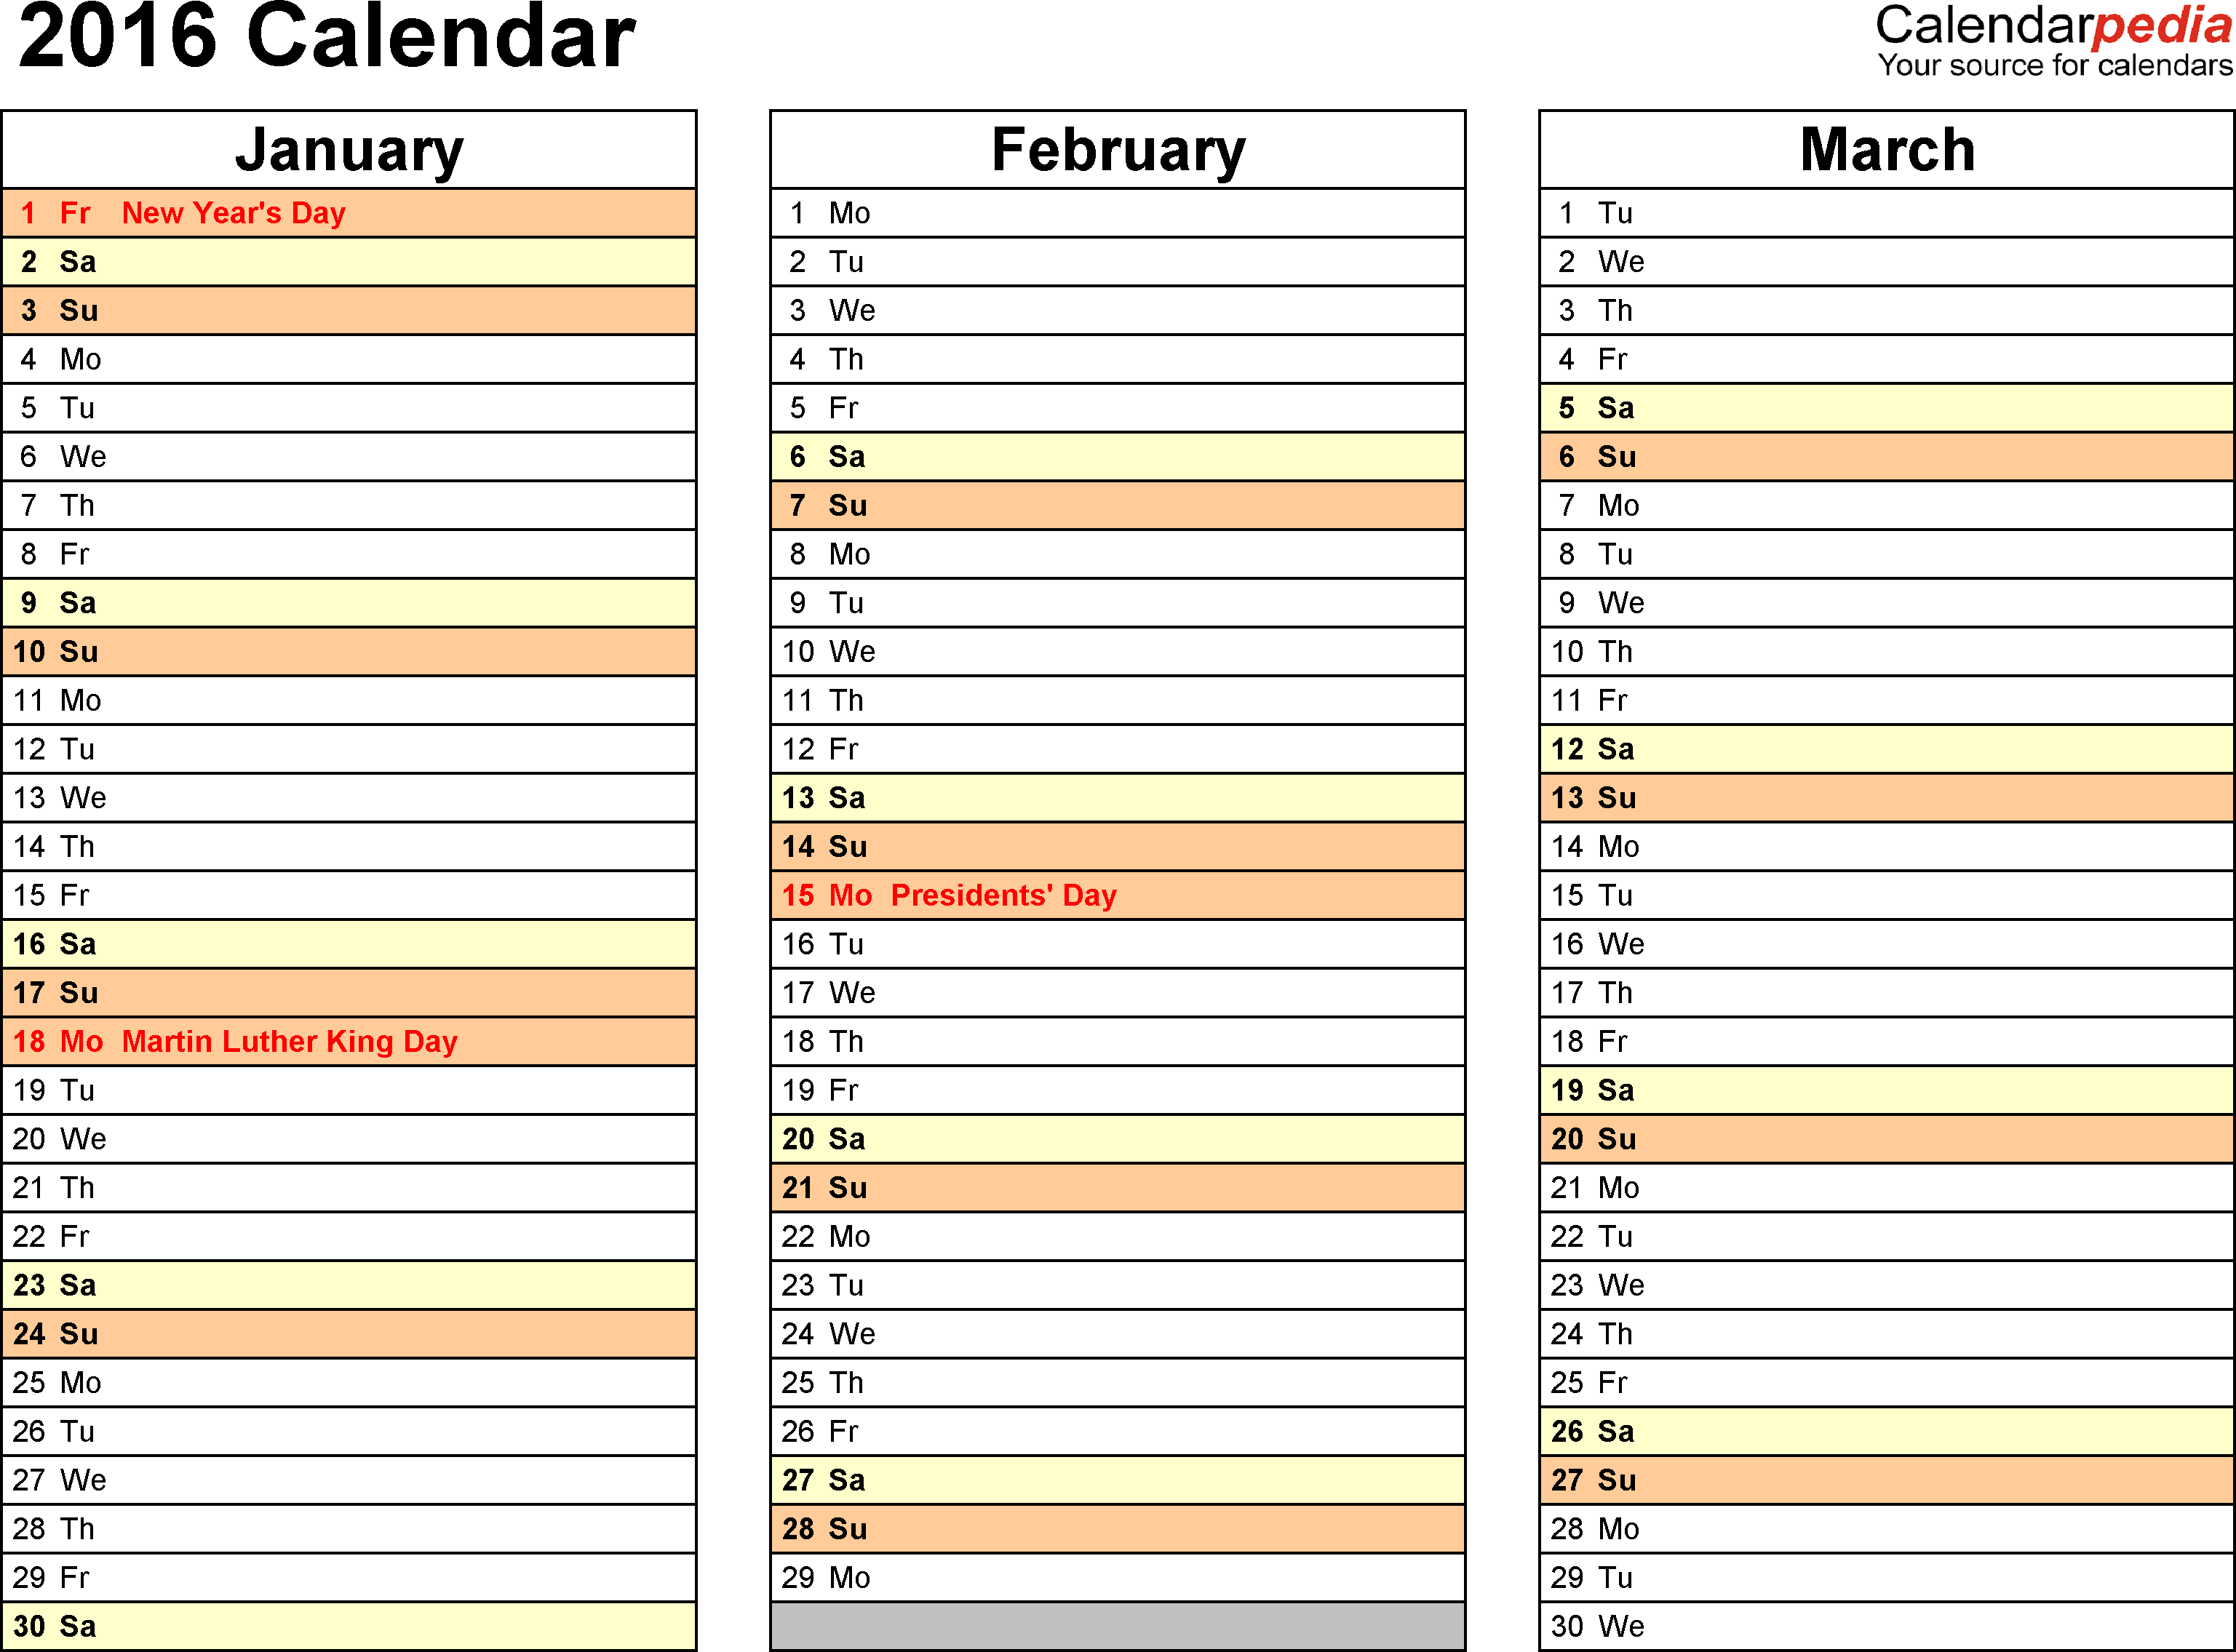 Template 5: 2016 Calendar for Excel, months horizontally, 4 pages, landscape orientation